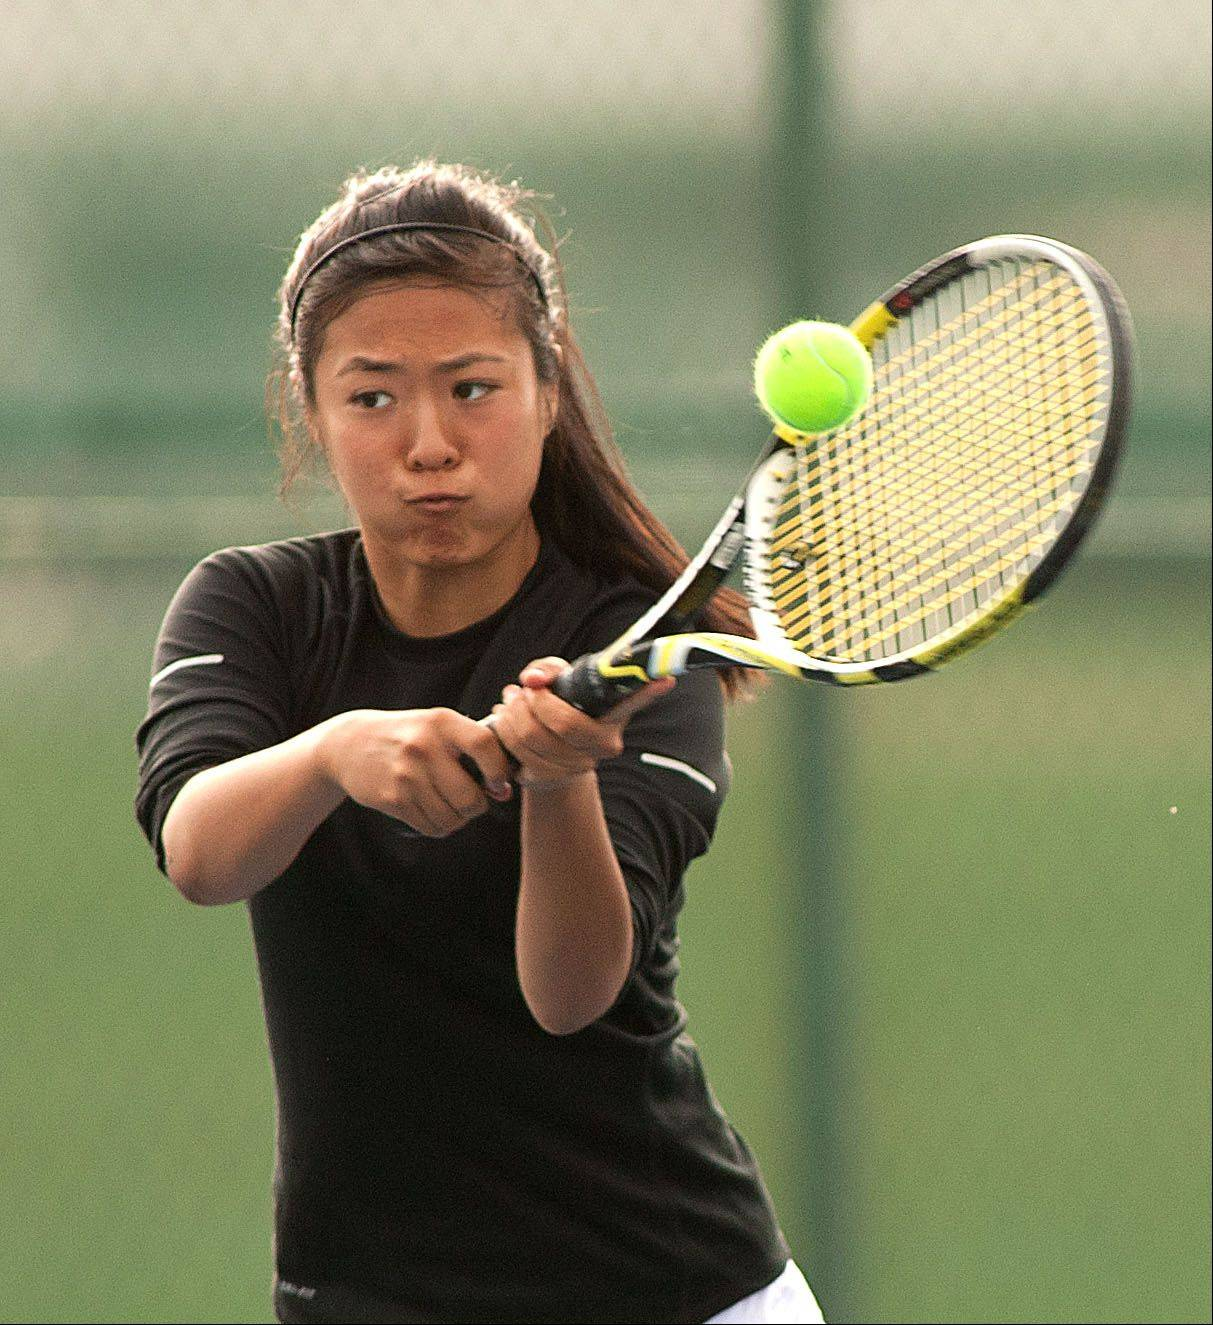 Naperville North doubles player Julia Li returns the ball during the DuPage Valley girls tennis finals at Naperville Central.